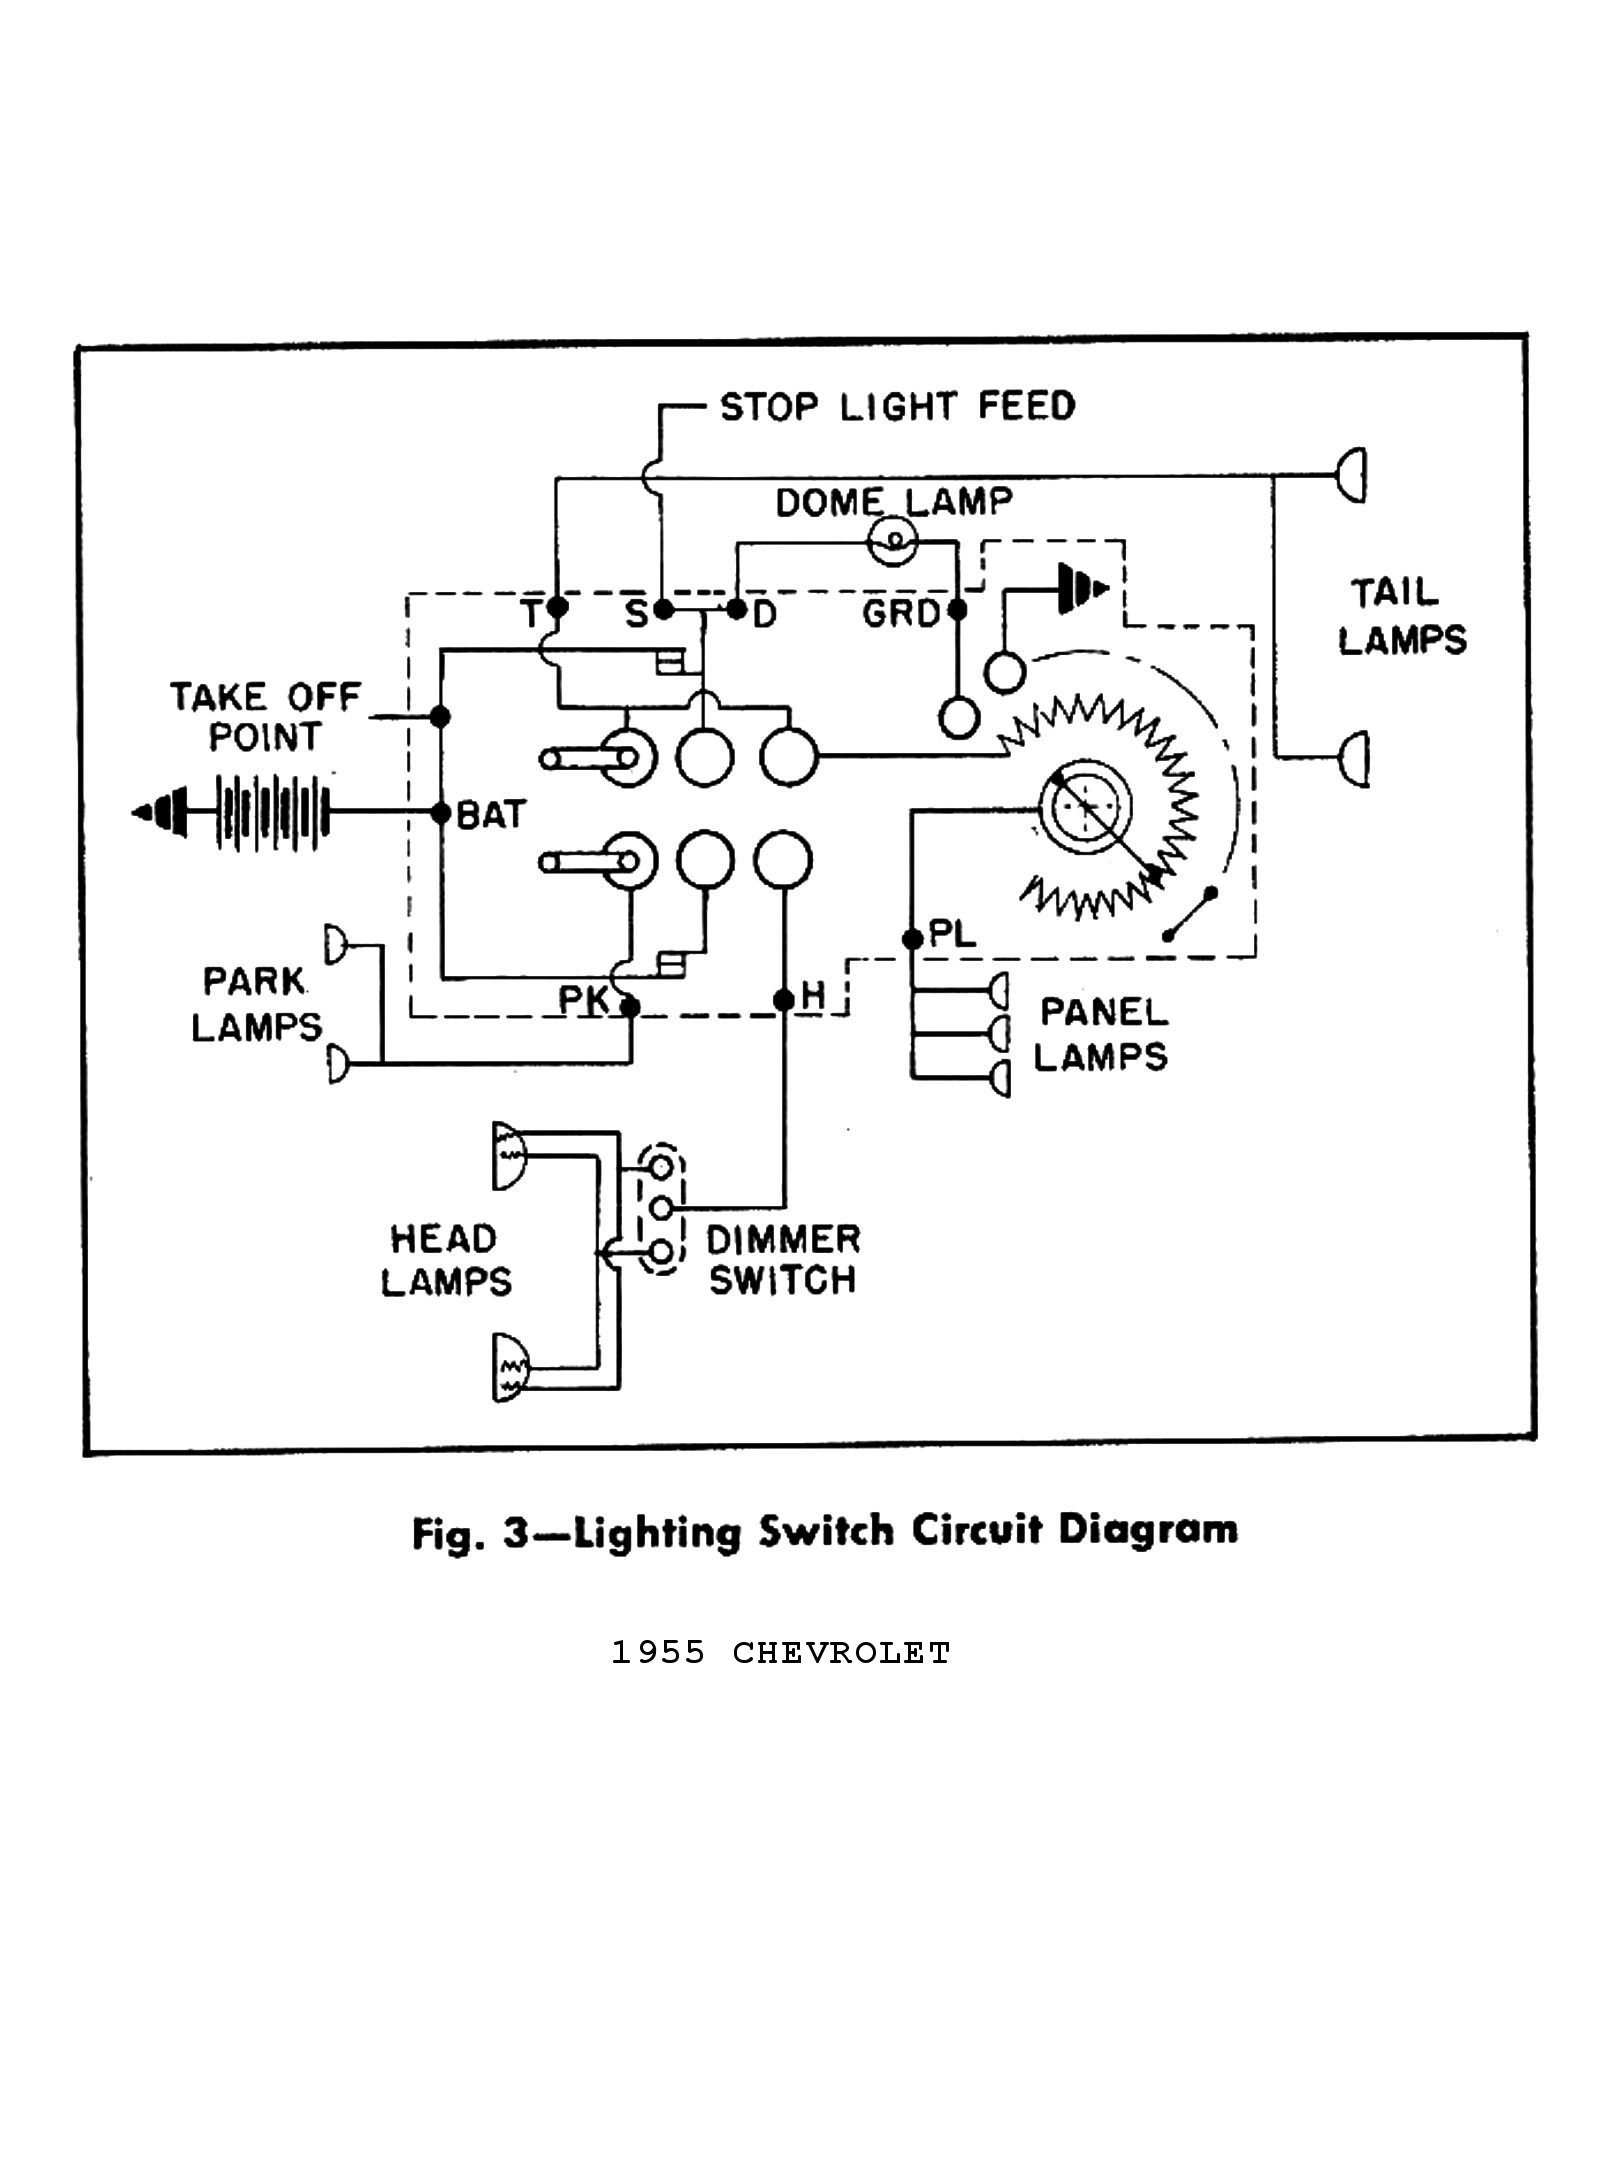 Chevy Lights Wiring Diagram Simple Guide About 2009 Colorado Fuse Box Diagrams Rh Oldcarmanualproject Com 2004